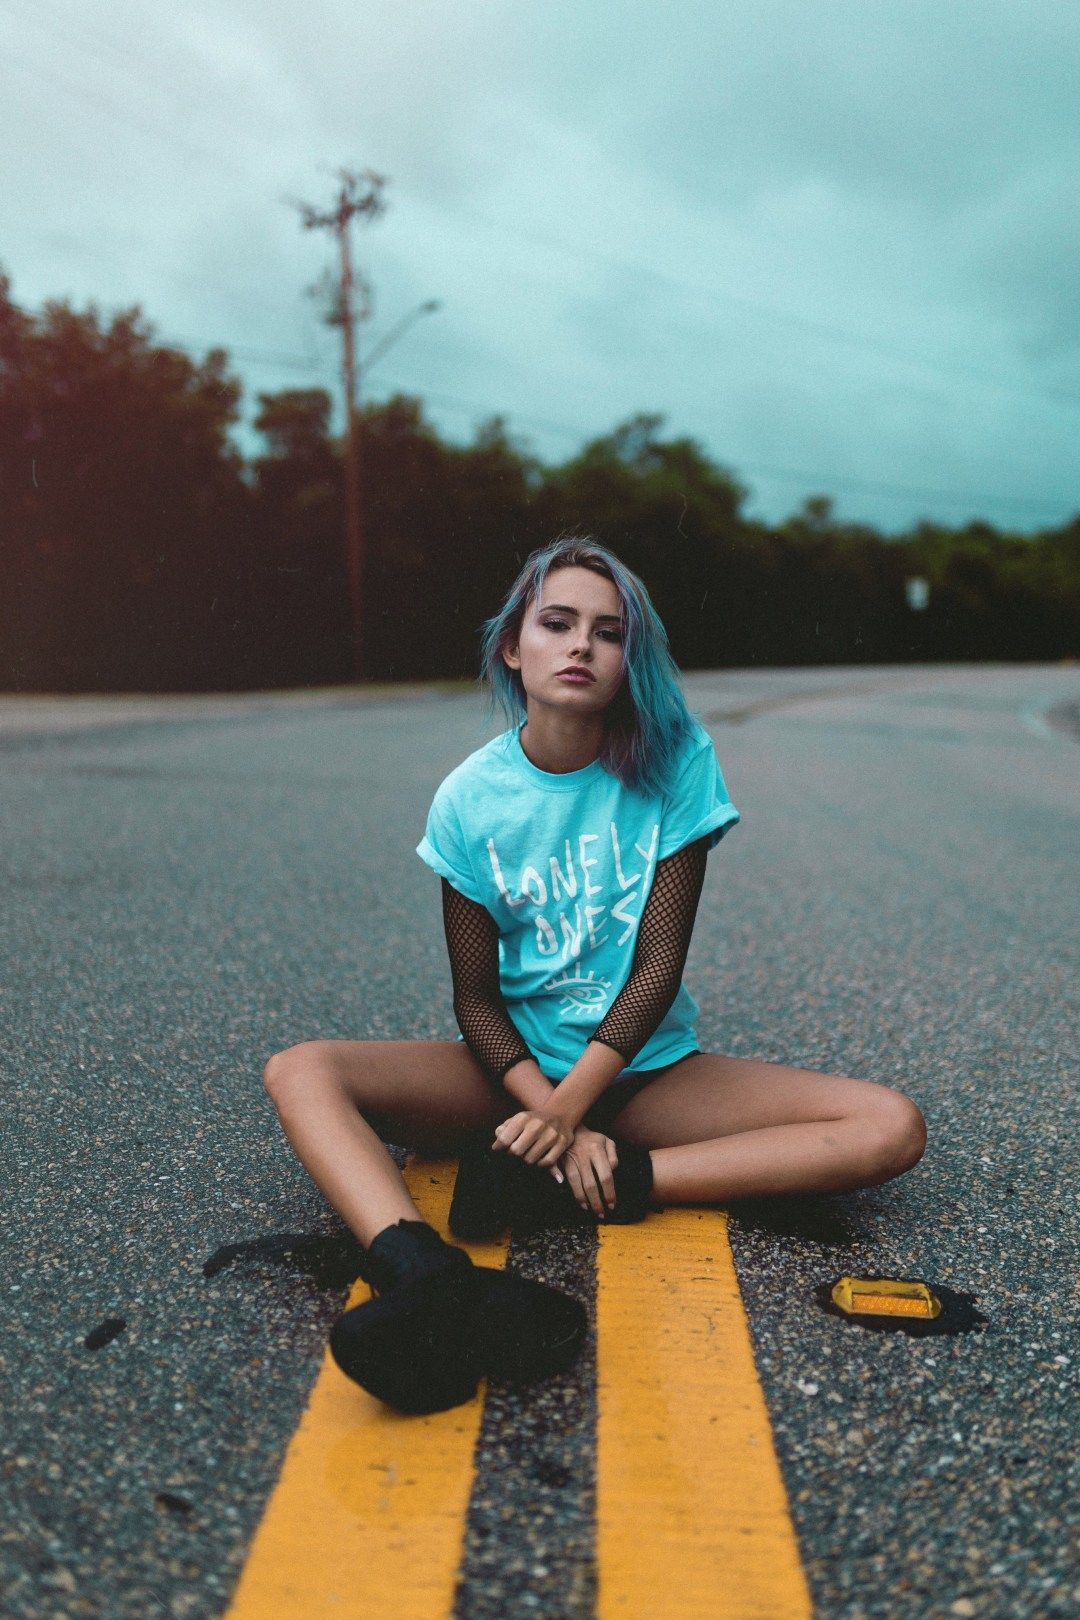 Girl Sitting Down Pictures  Download Free Images on Unsplash